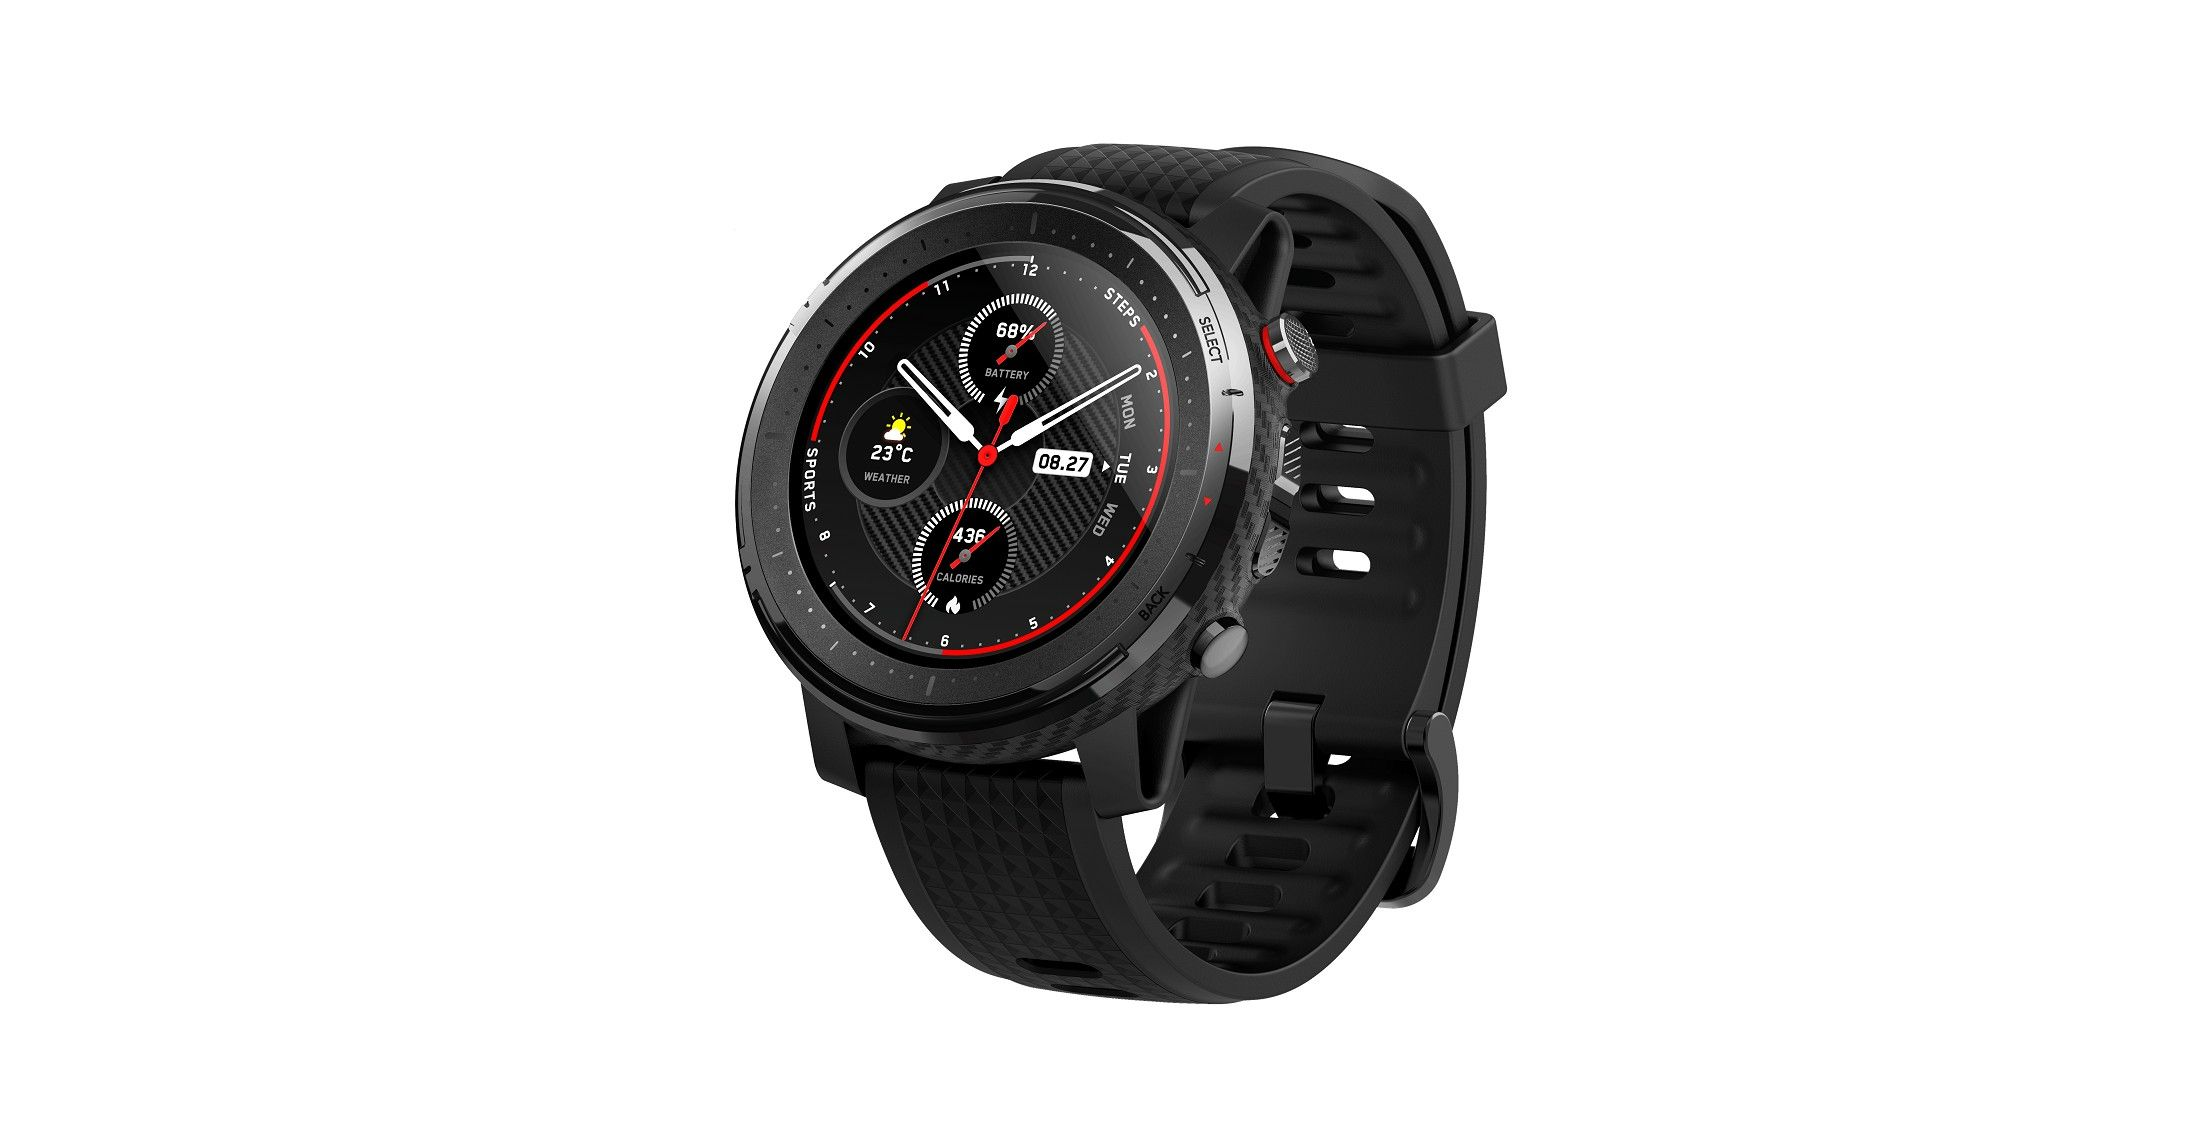 Amazfits dual os sports watch stratos 3 poised to launch